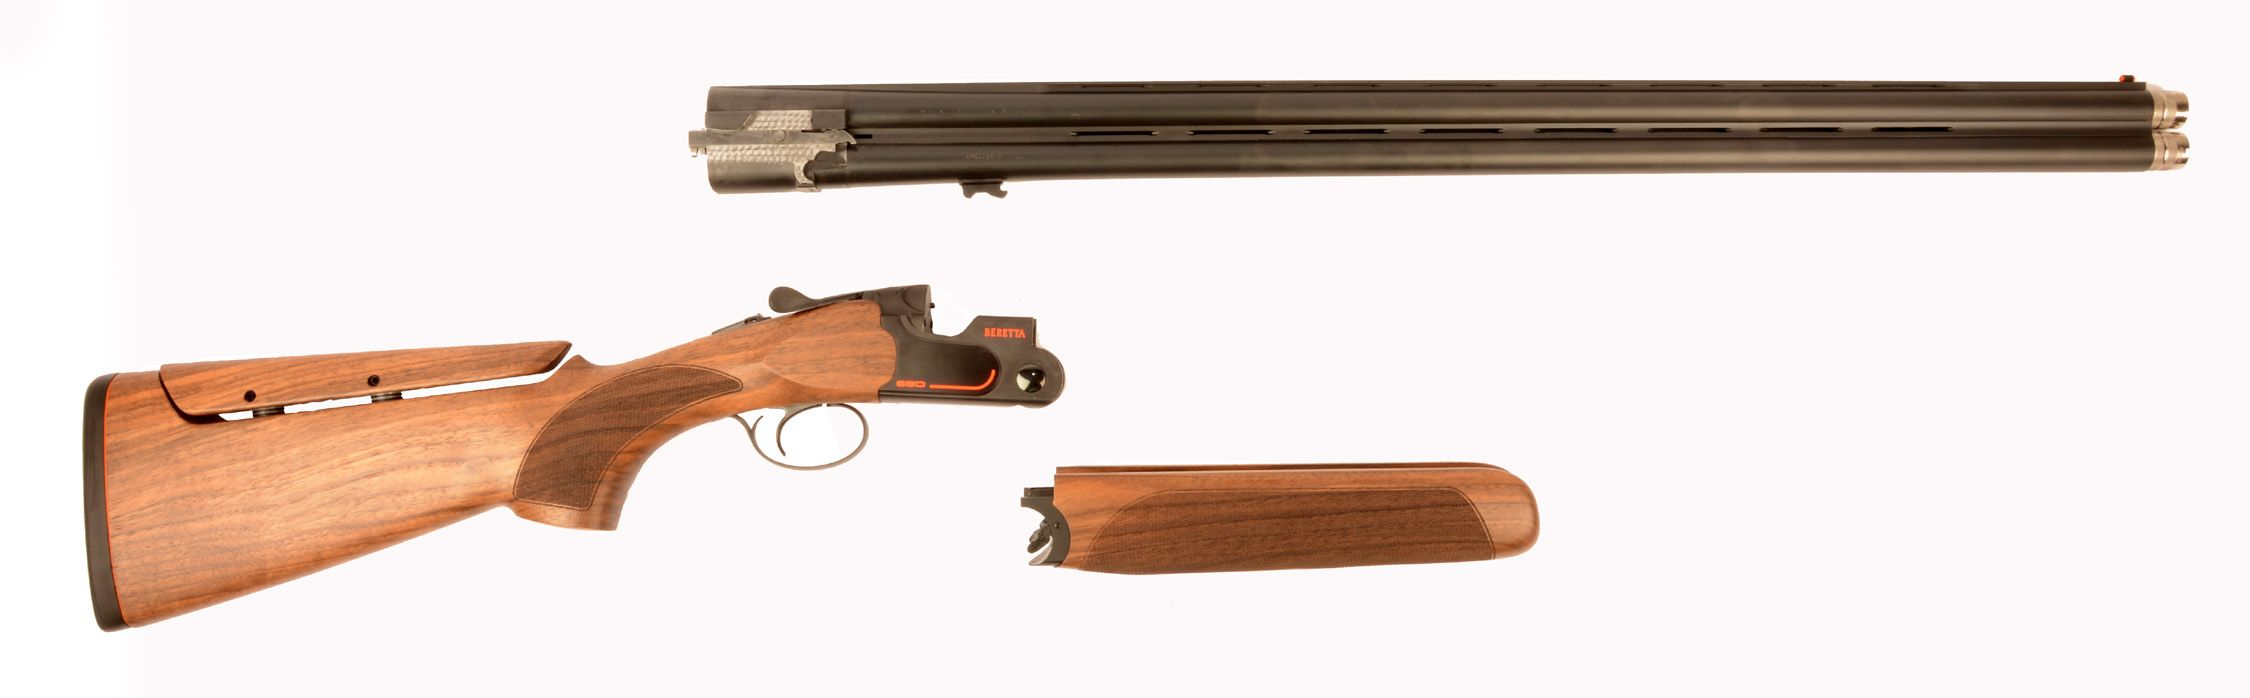 BERETTA 690 Black Sporting 12-76